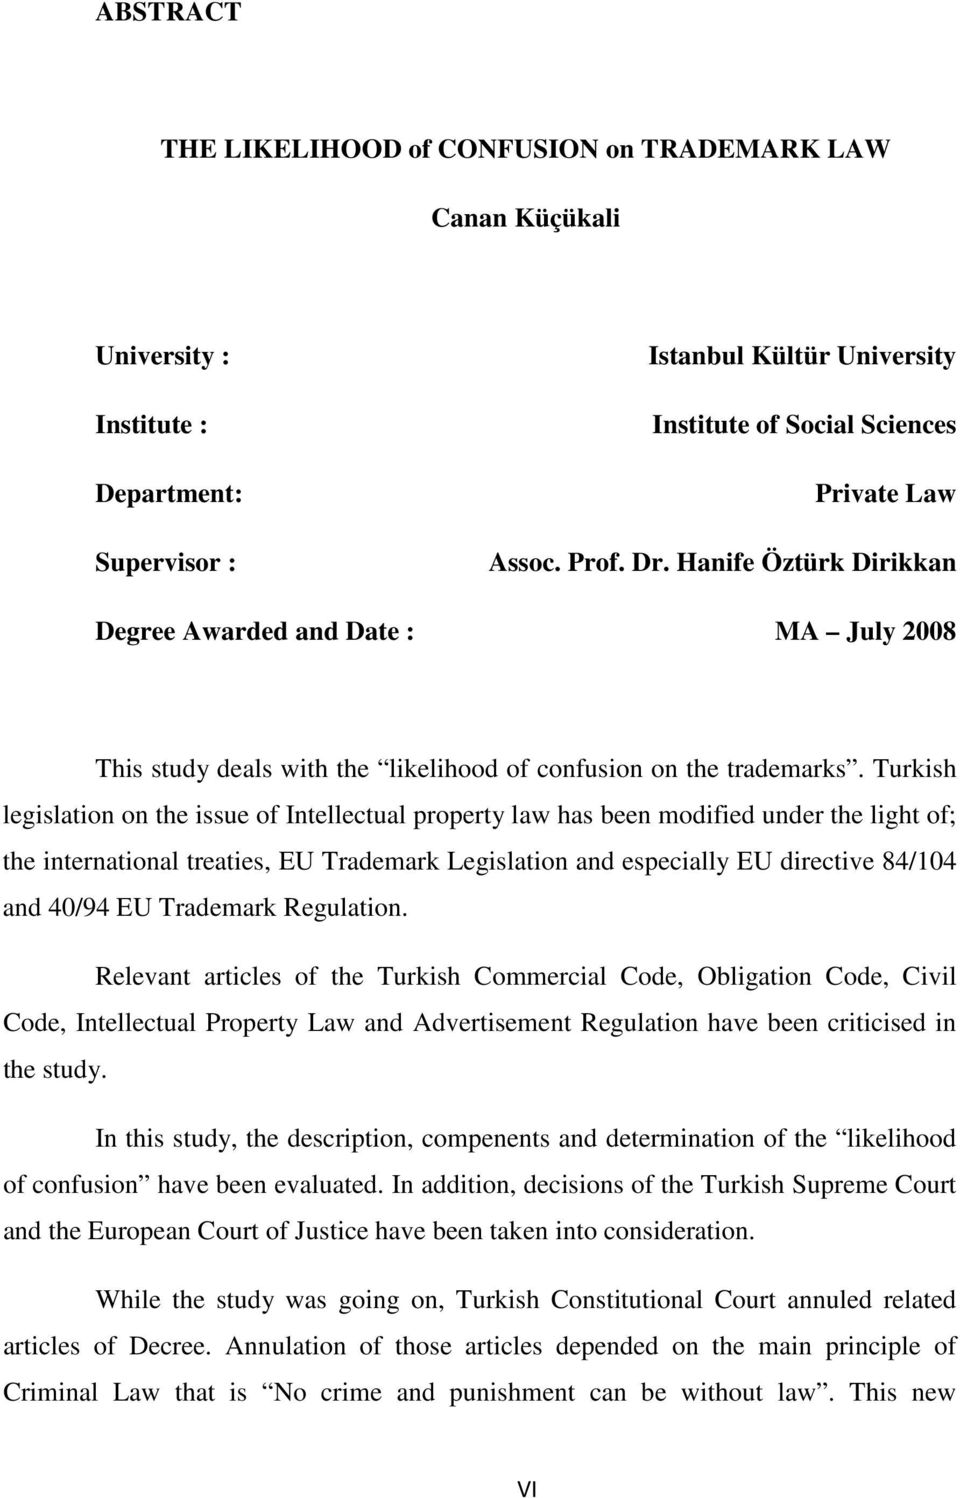 Turkish legislation on the issue of Intellectual property law has been modified under the light of; the international treaties, EU Trademark Legislation and especially EU directive 84/104 and 40/94